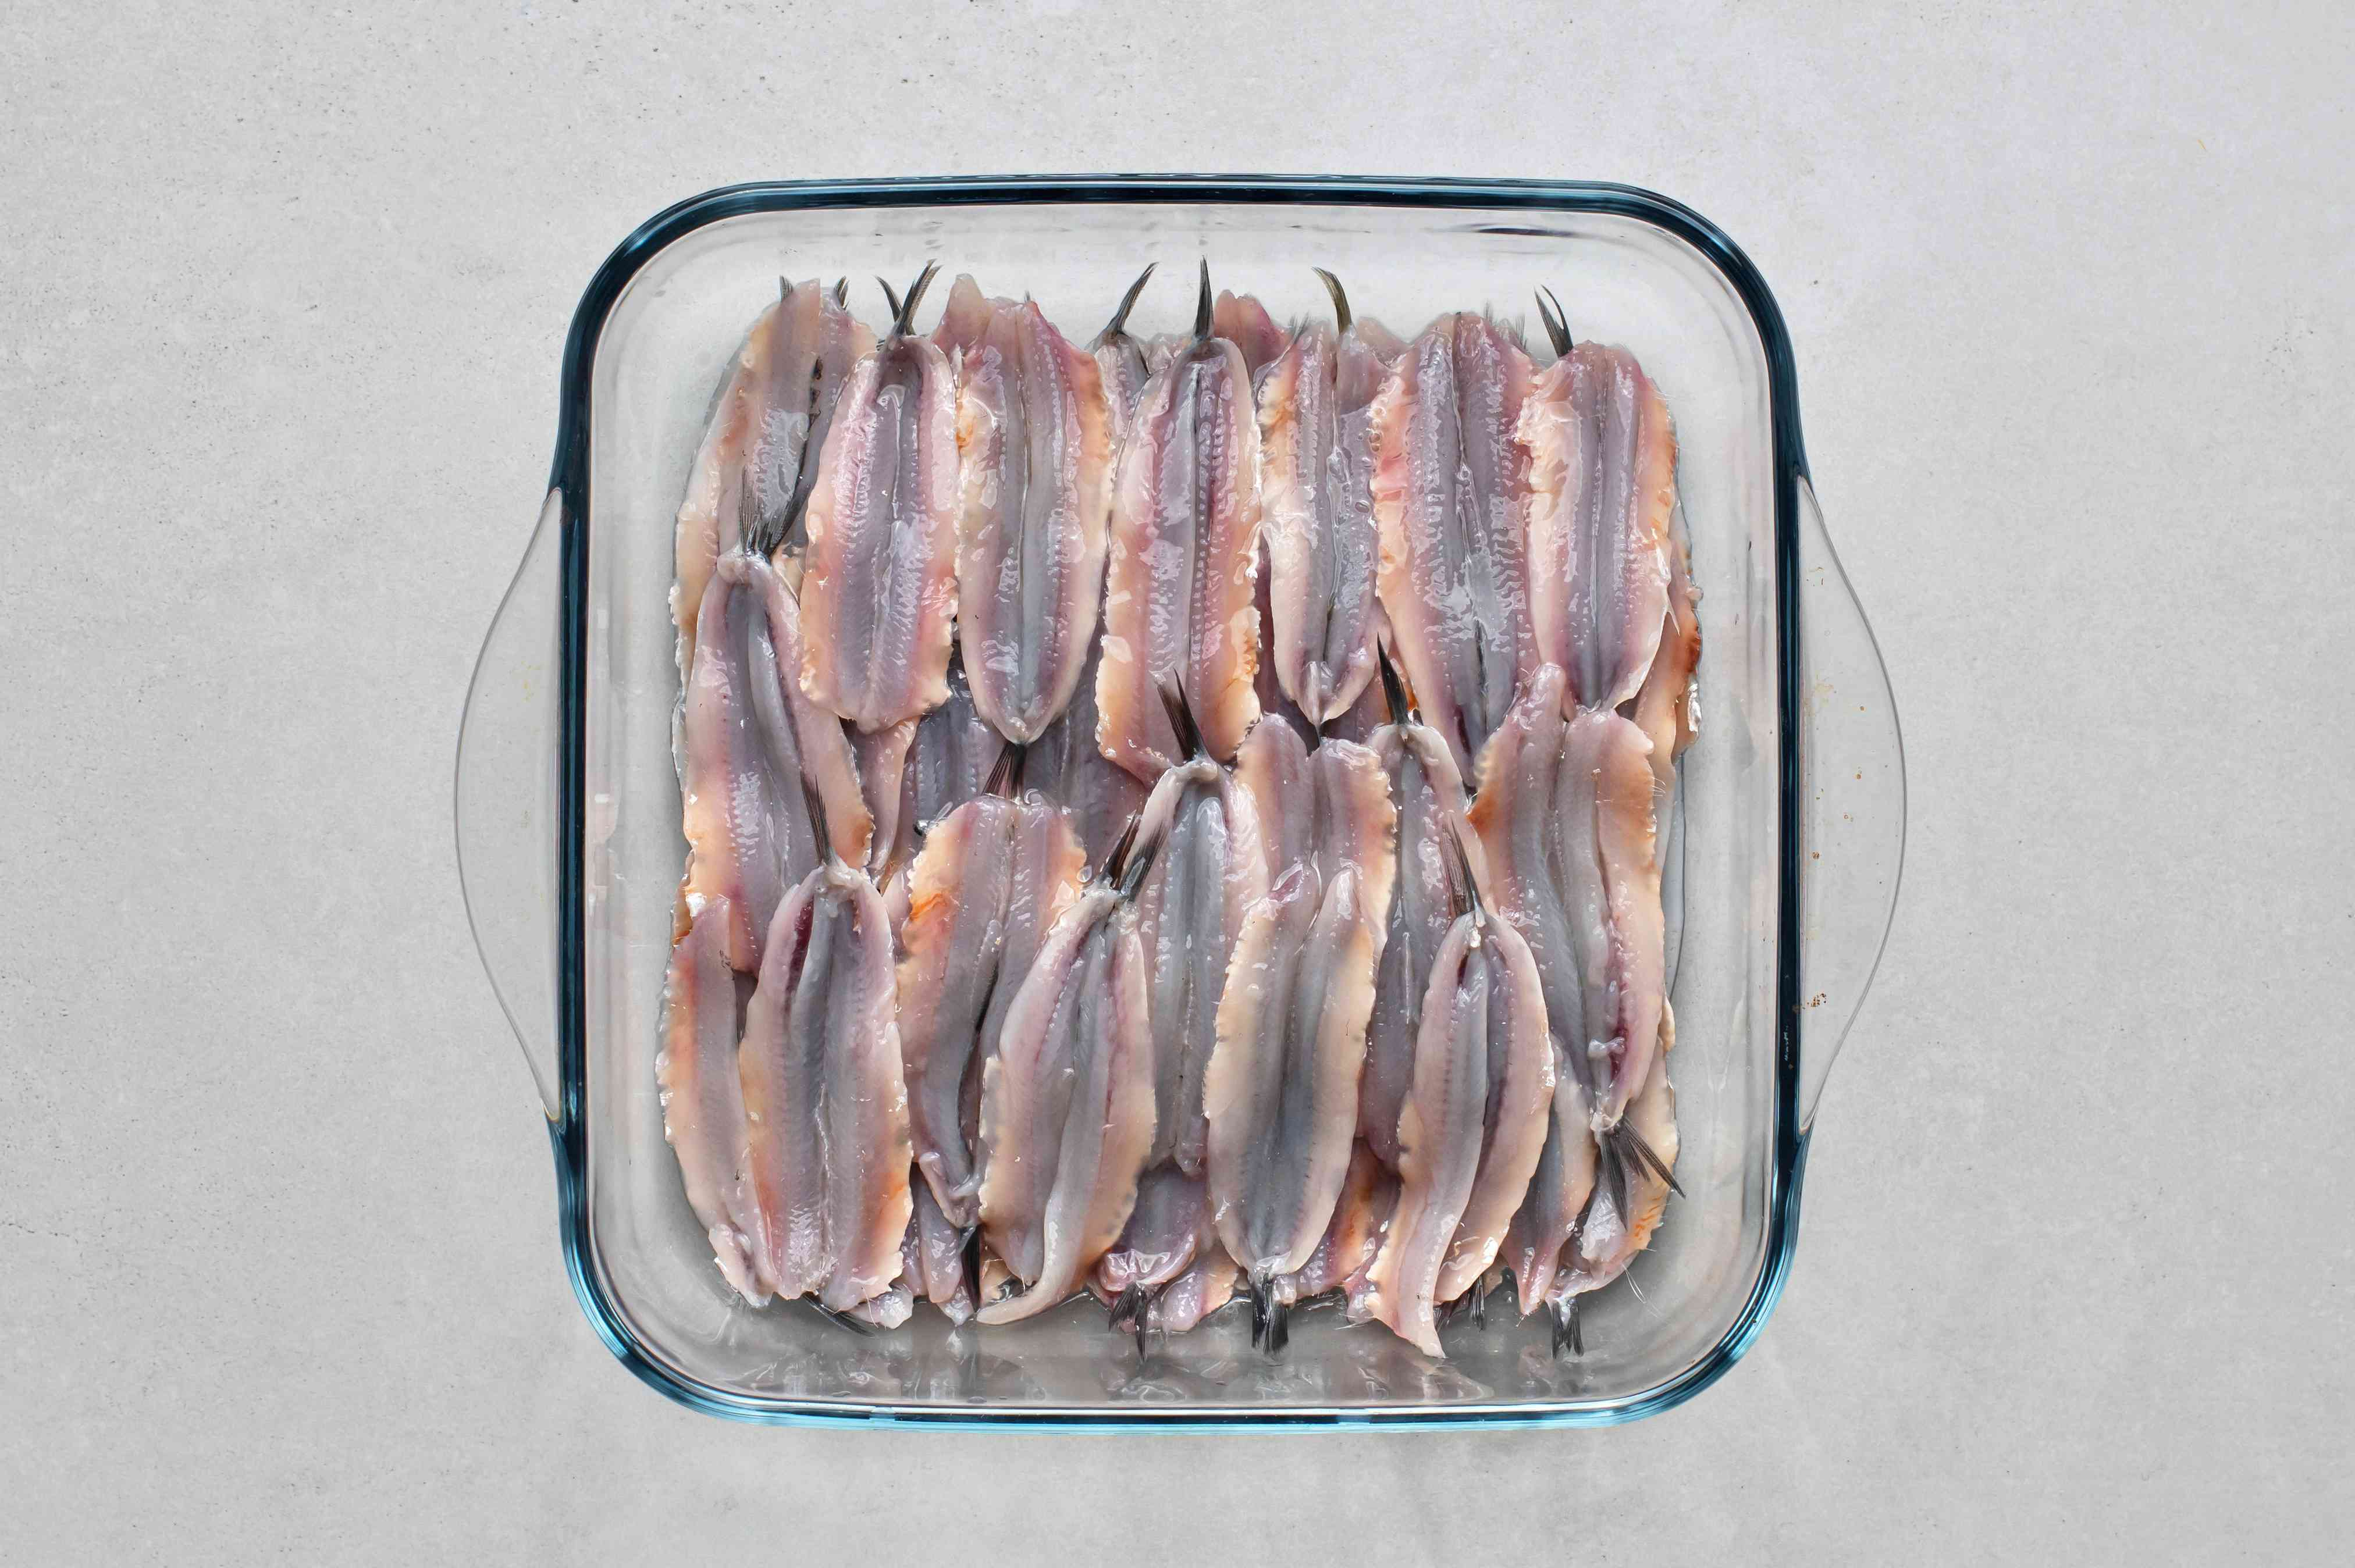 anchovies in a glass baking dish